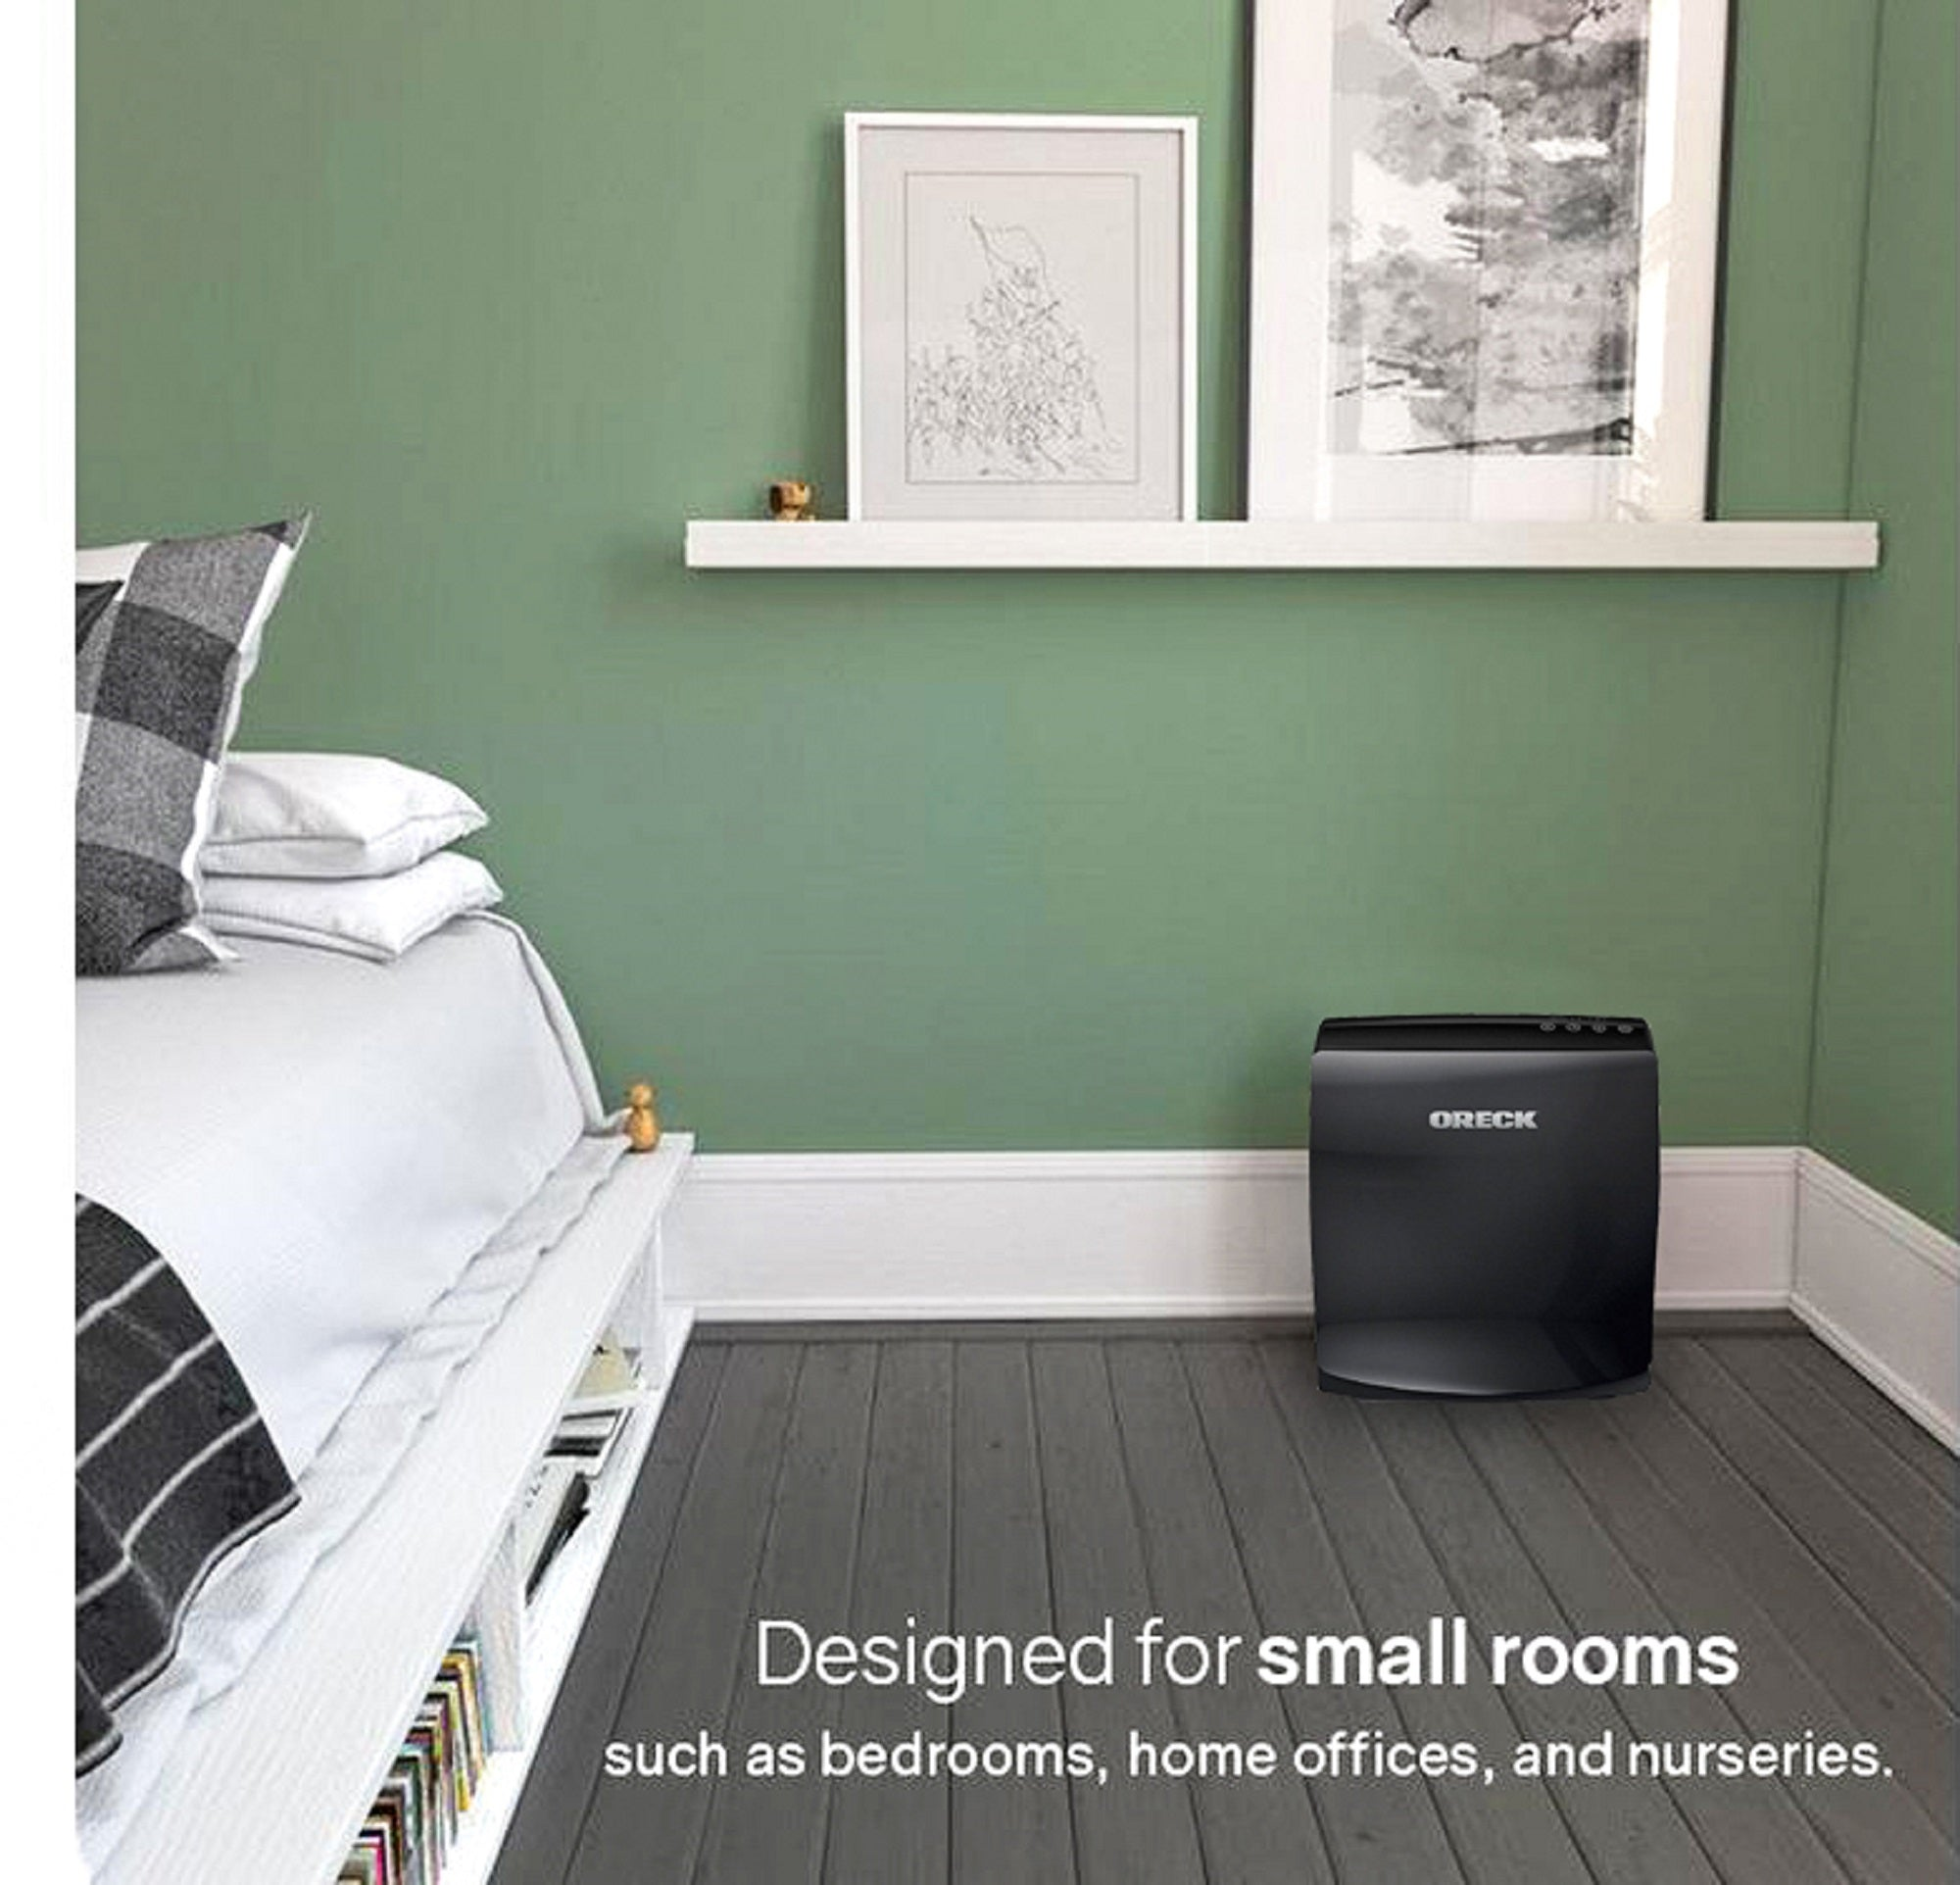 Oreck AirVantage 1 True HEPA, Charcoal Air Purifier and Allergen Remover For Small To Medium Sized Room (Black)